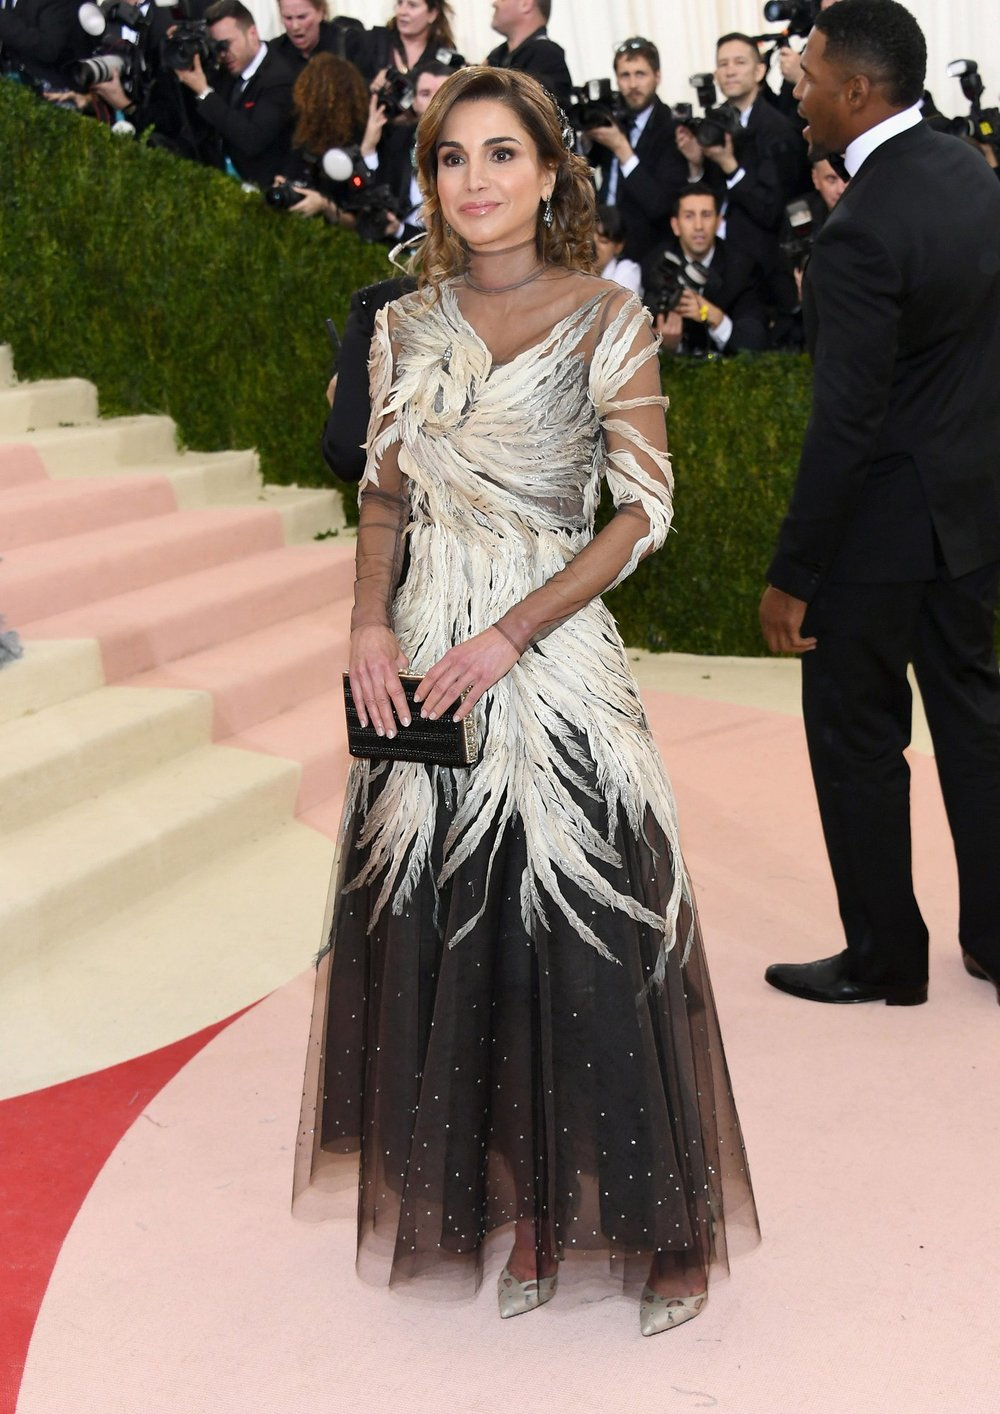 Queen Raina of Jordan in Valentino